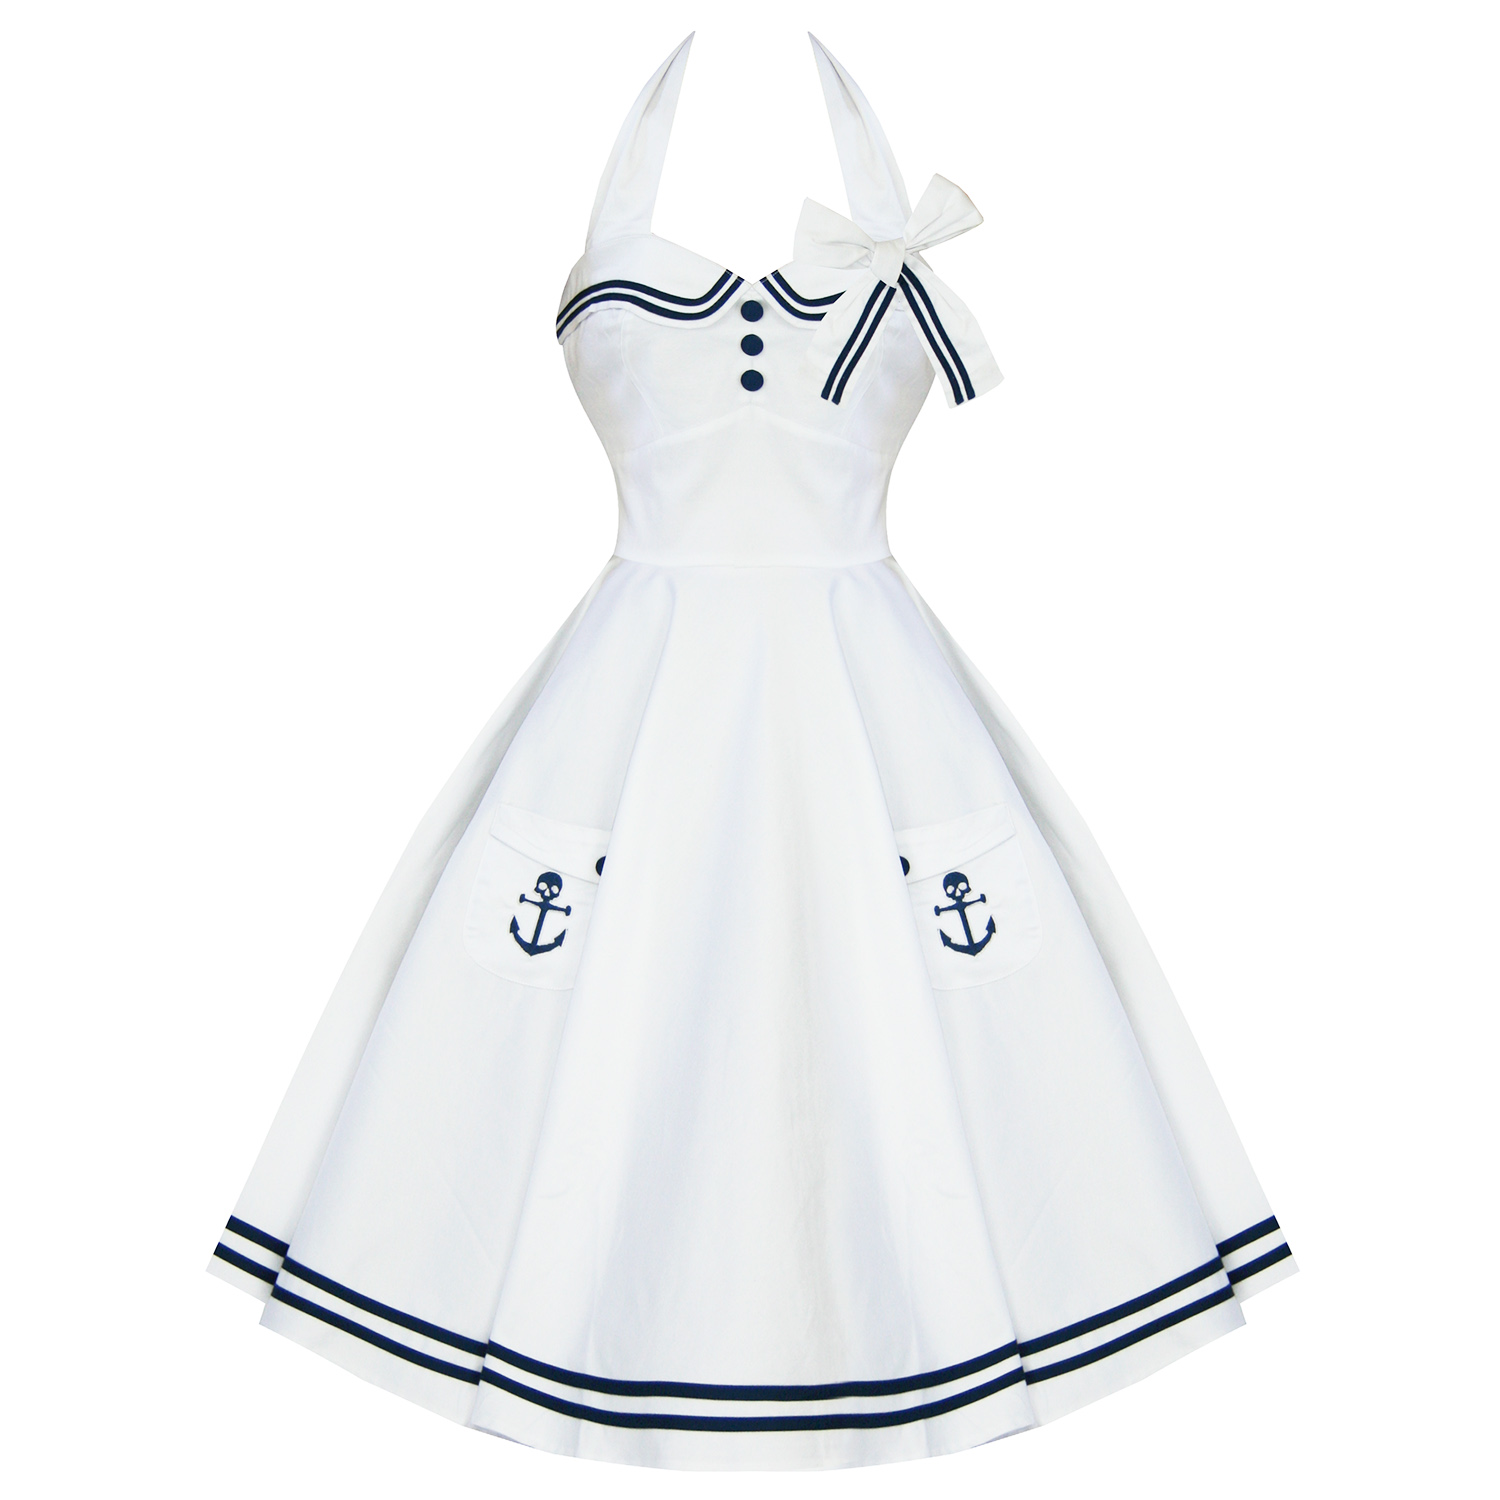 Retro White Dress